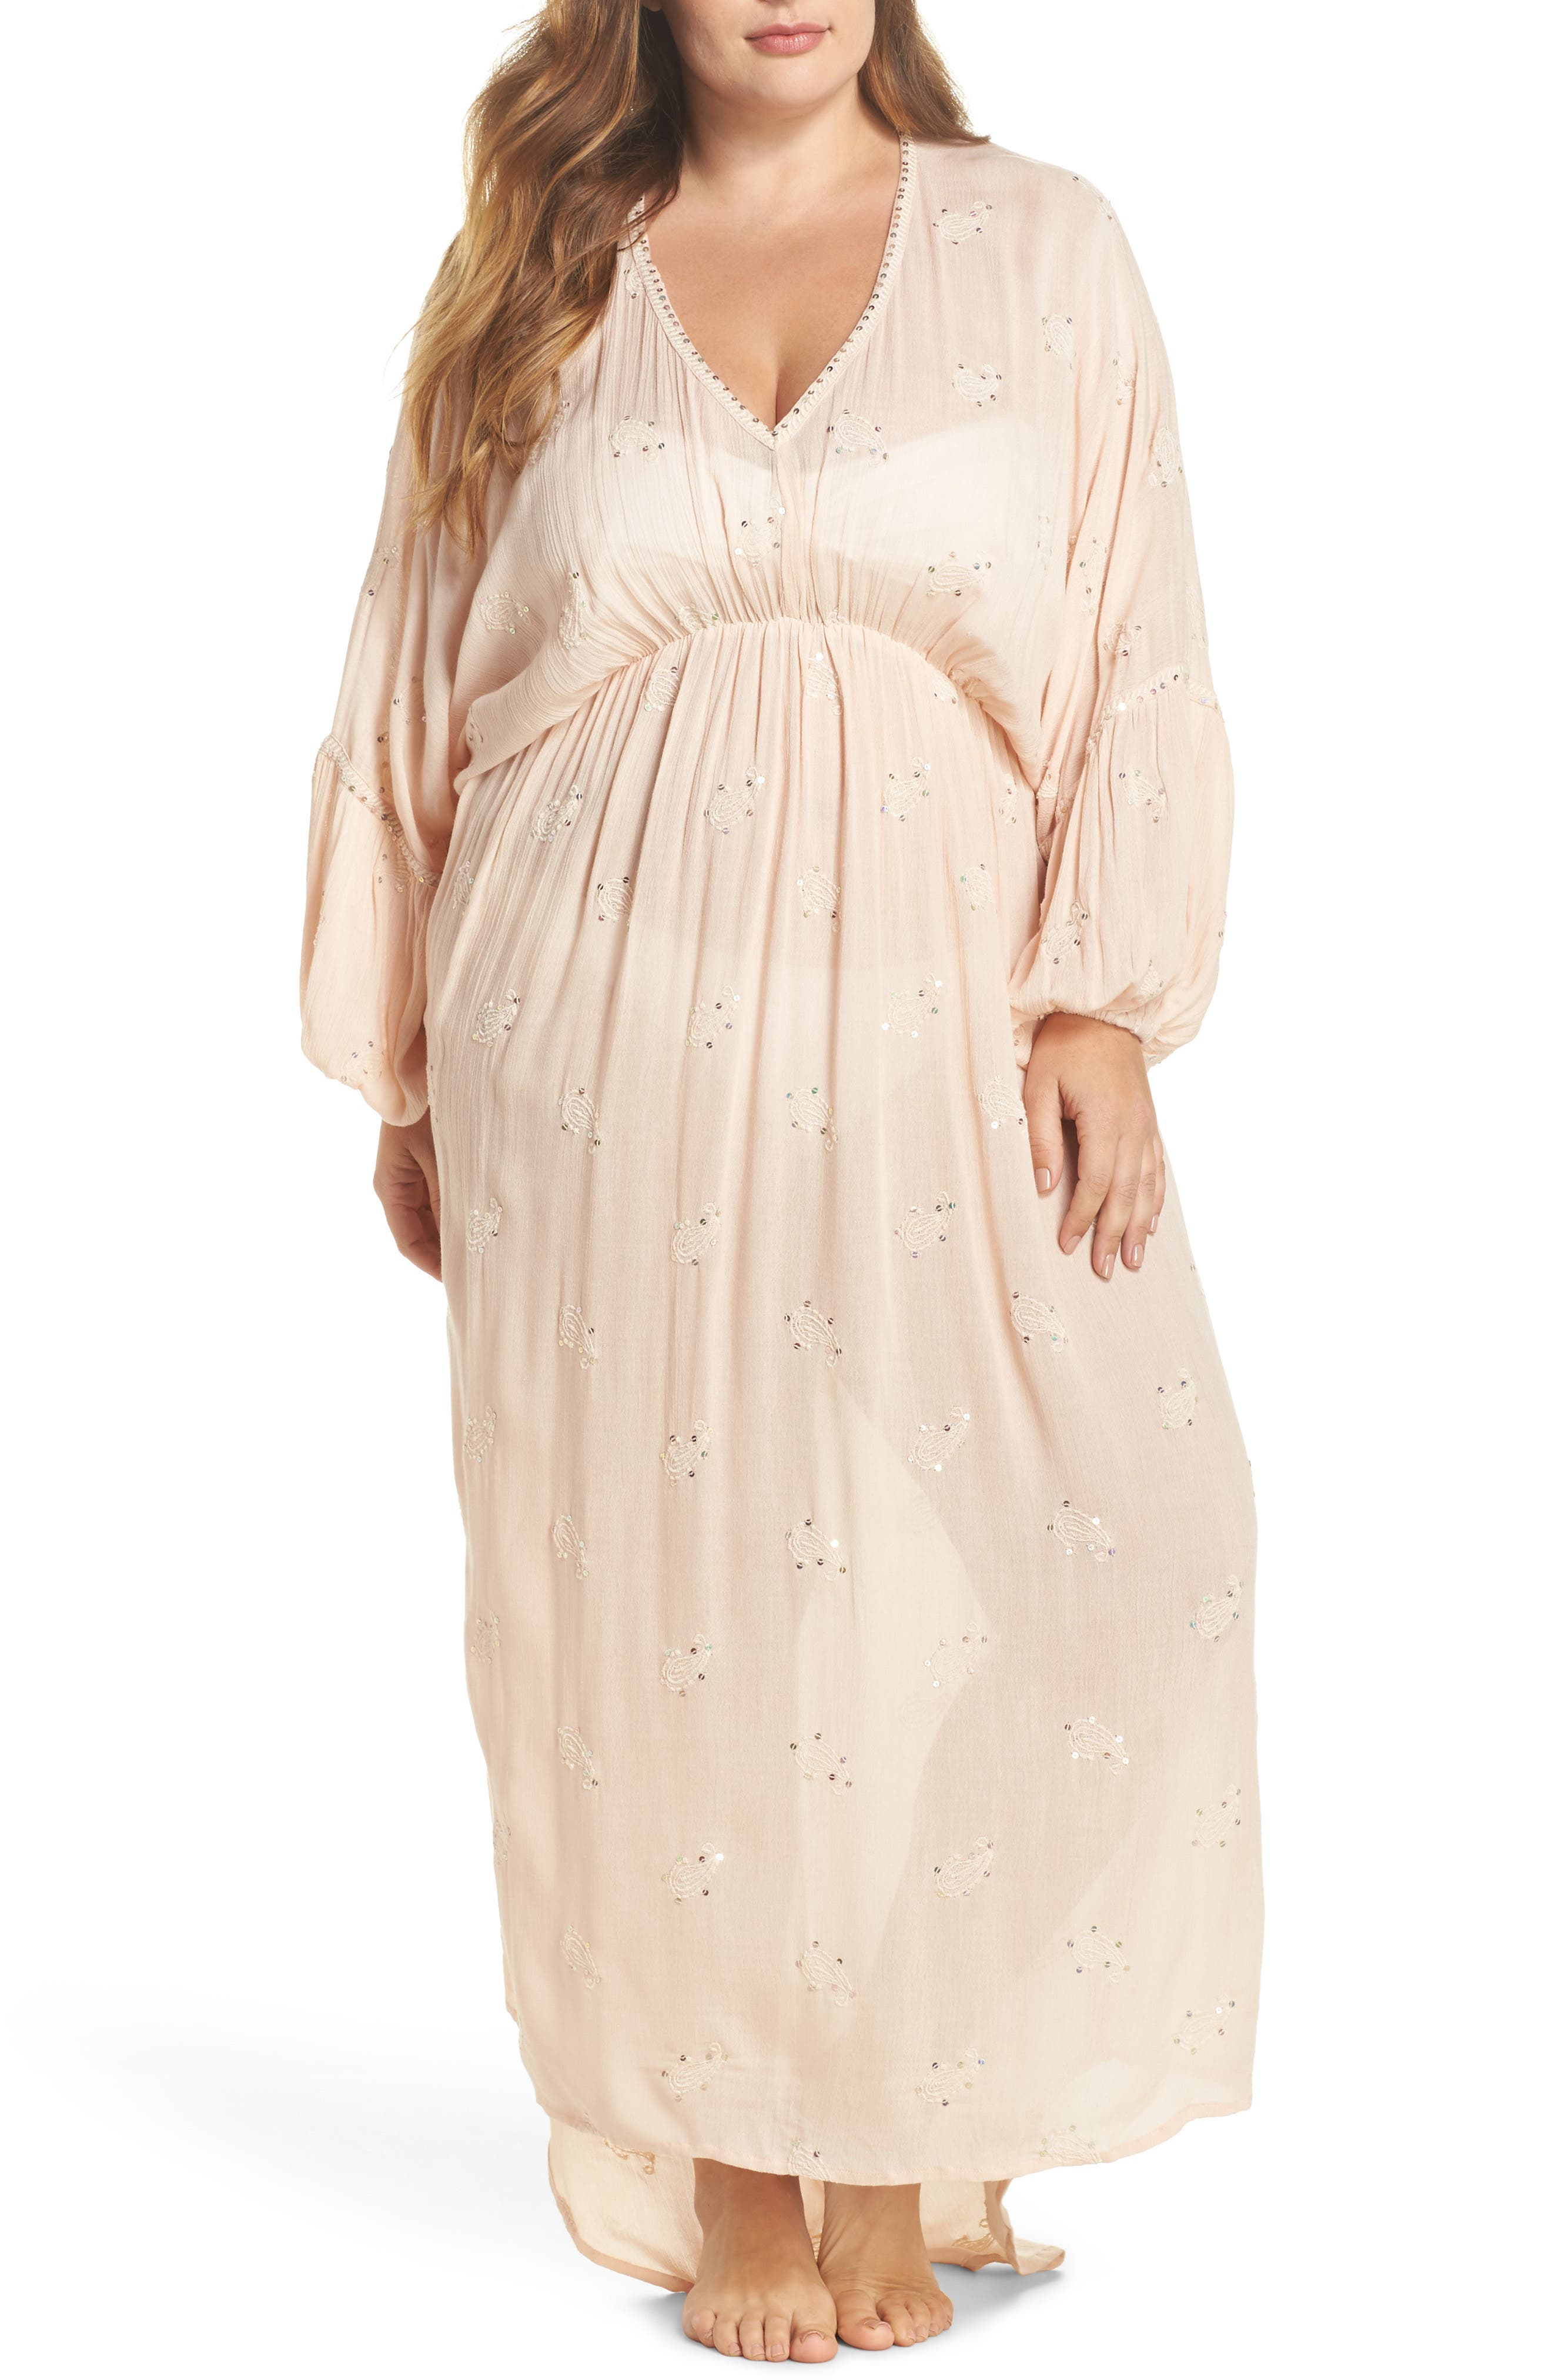 Mercer Cover-Up Dress,                         Main,                         color, 651